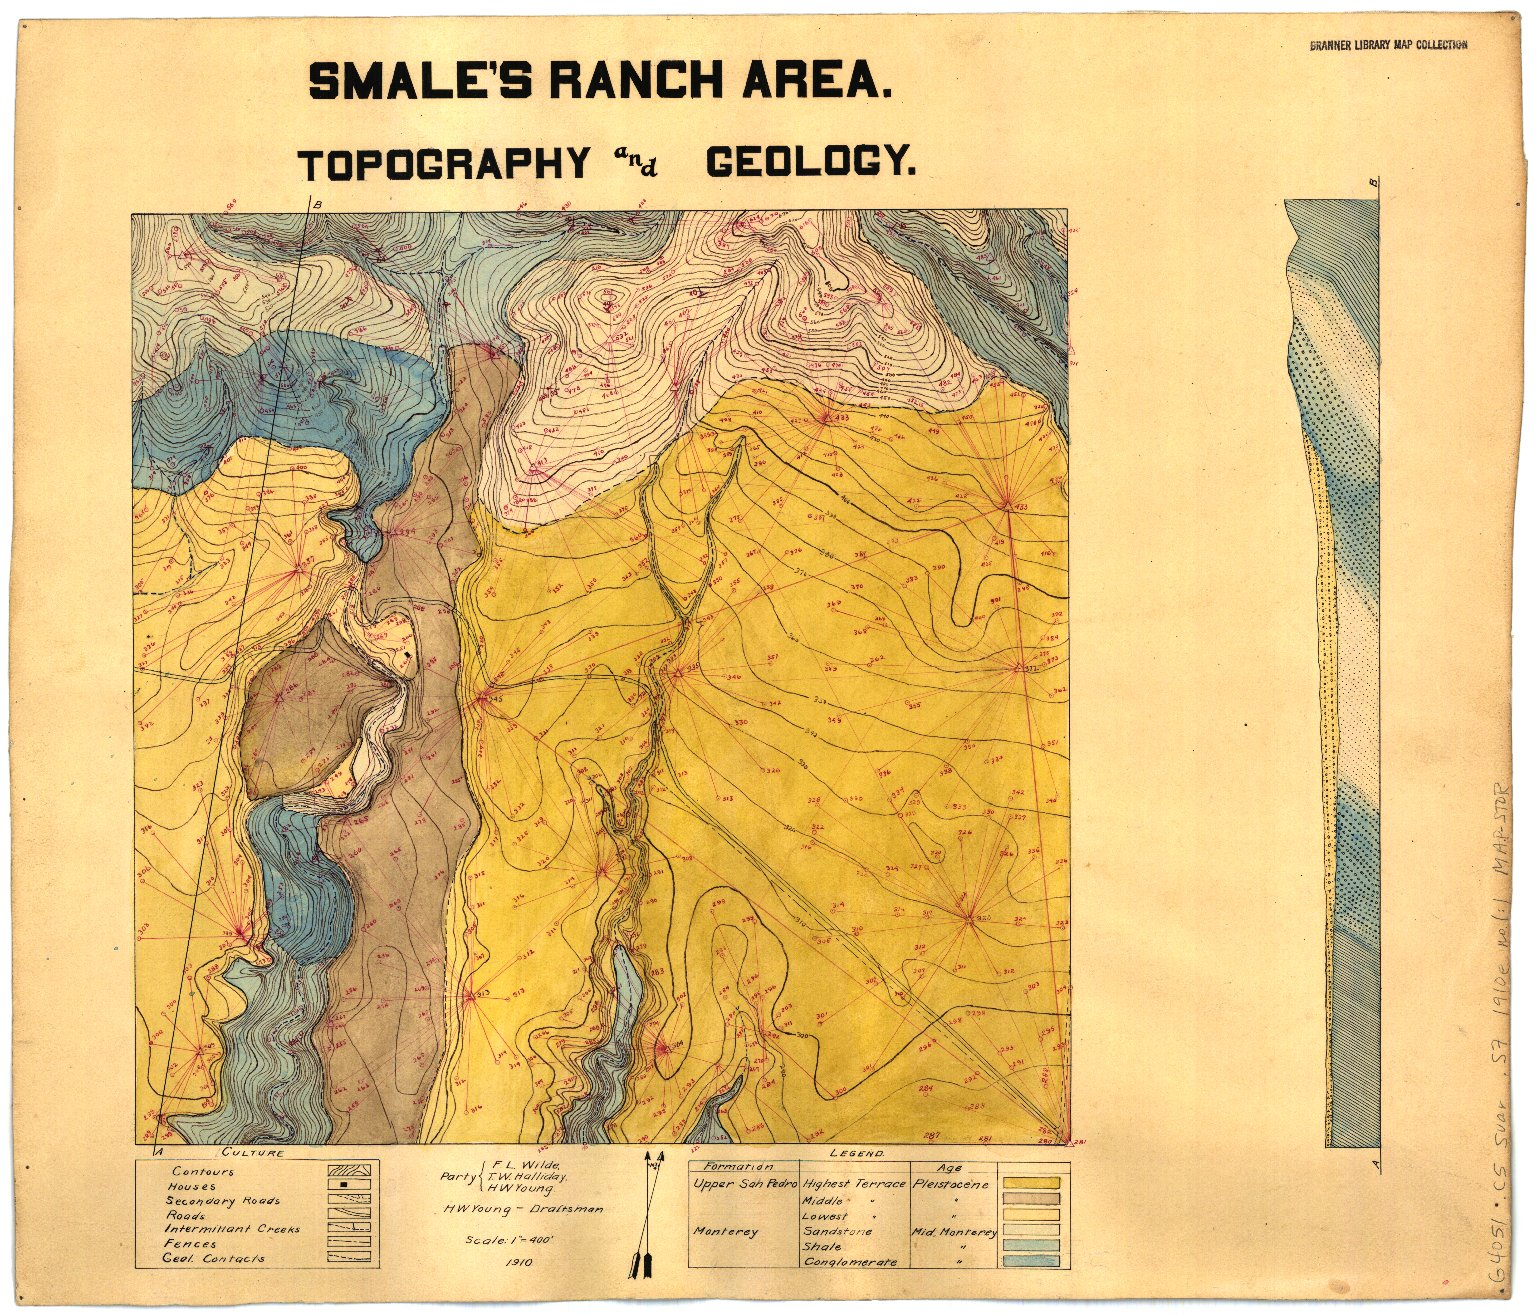 Smale's ranch area